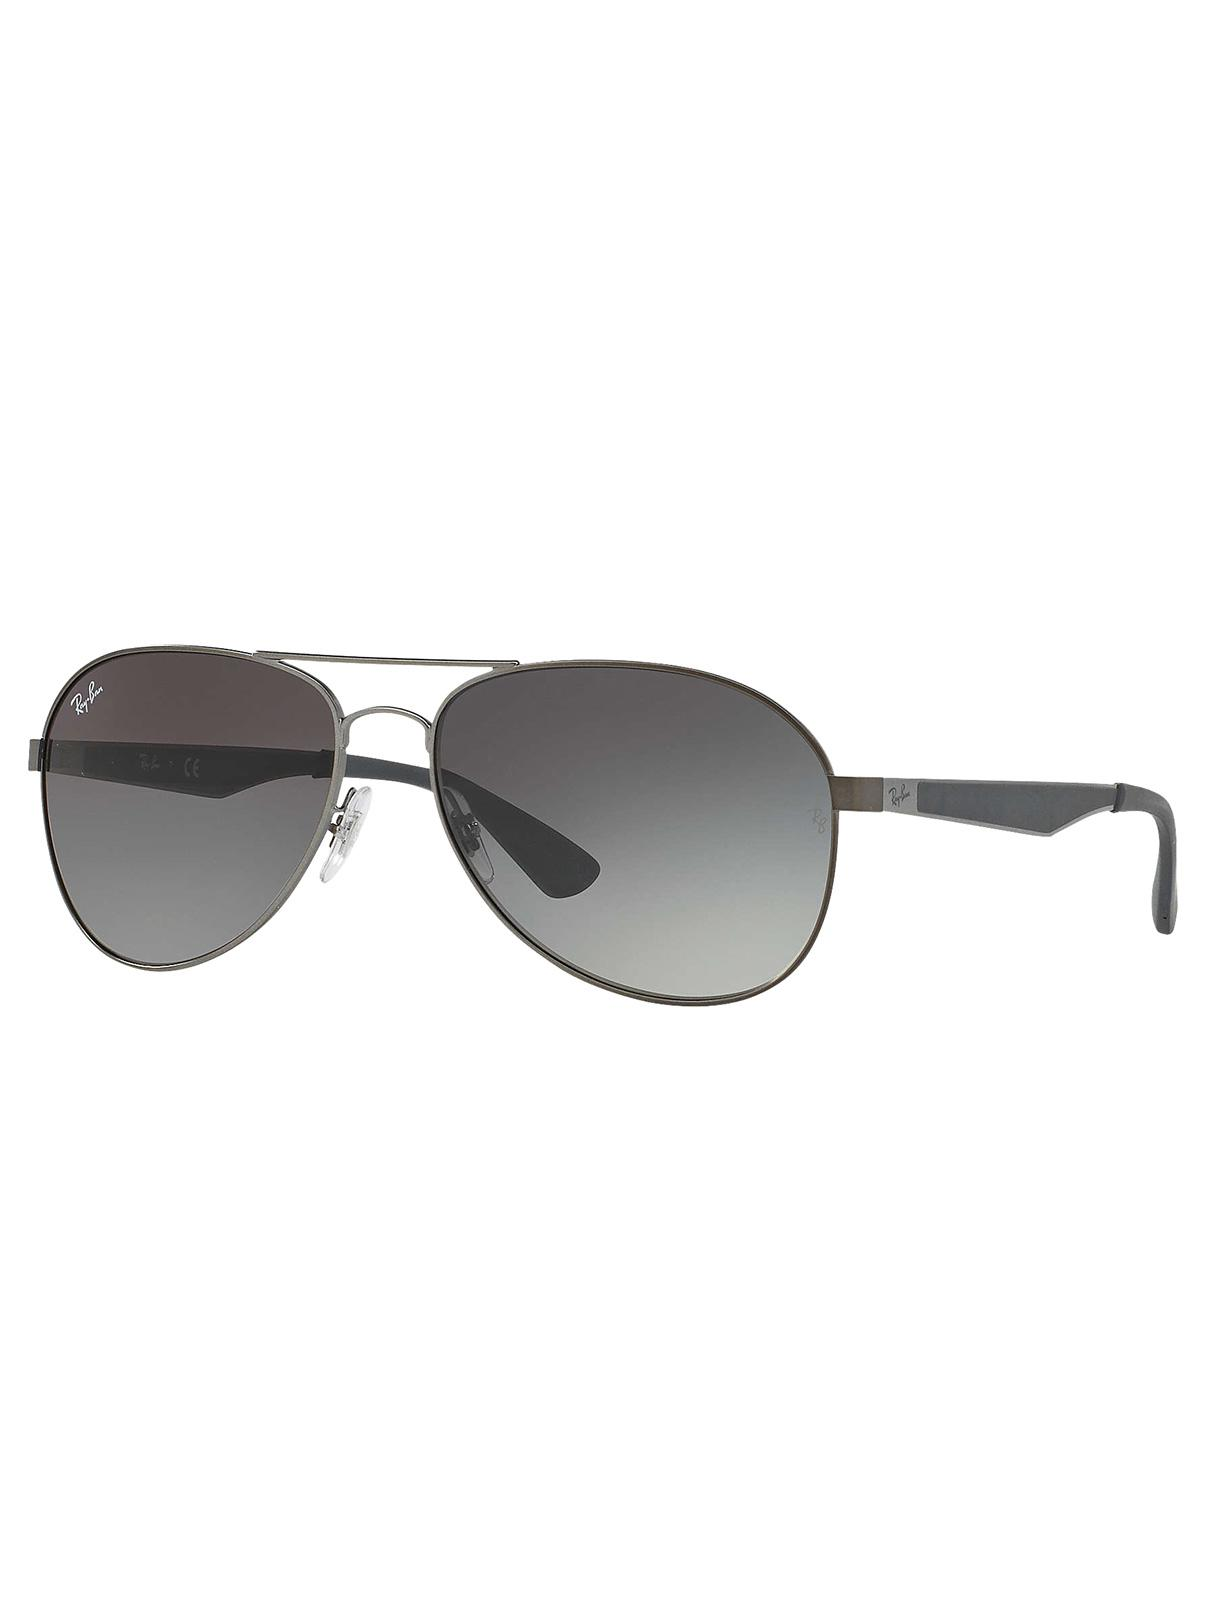 4048d4a50a Ray Ban Rb4181 Sunglass Hut « One More Soul